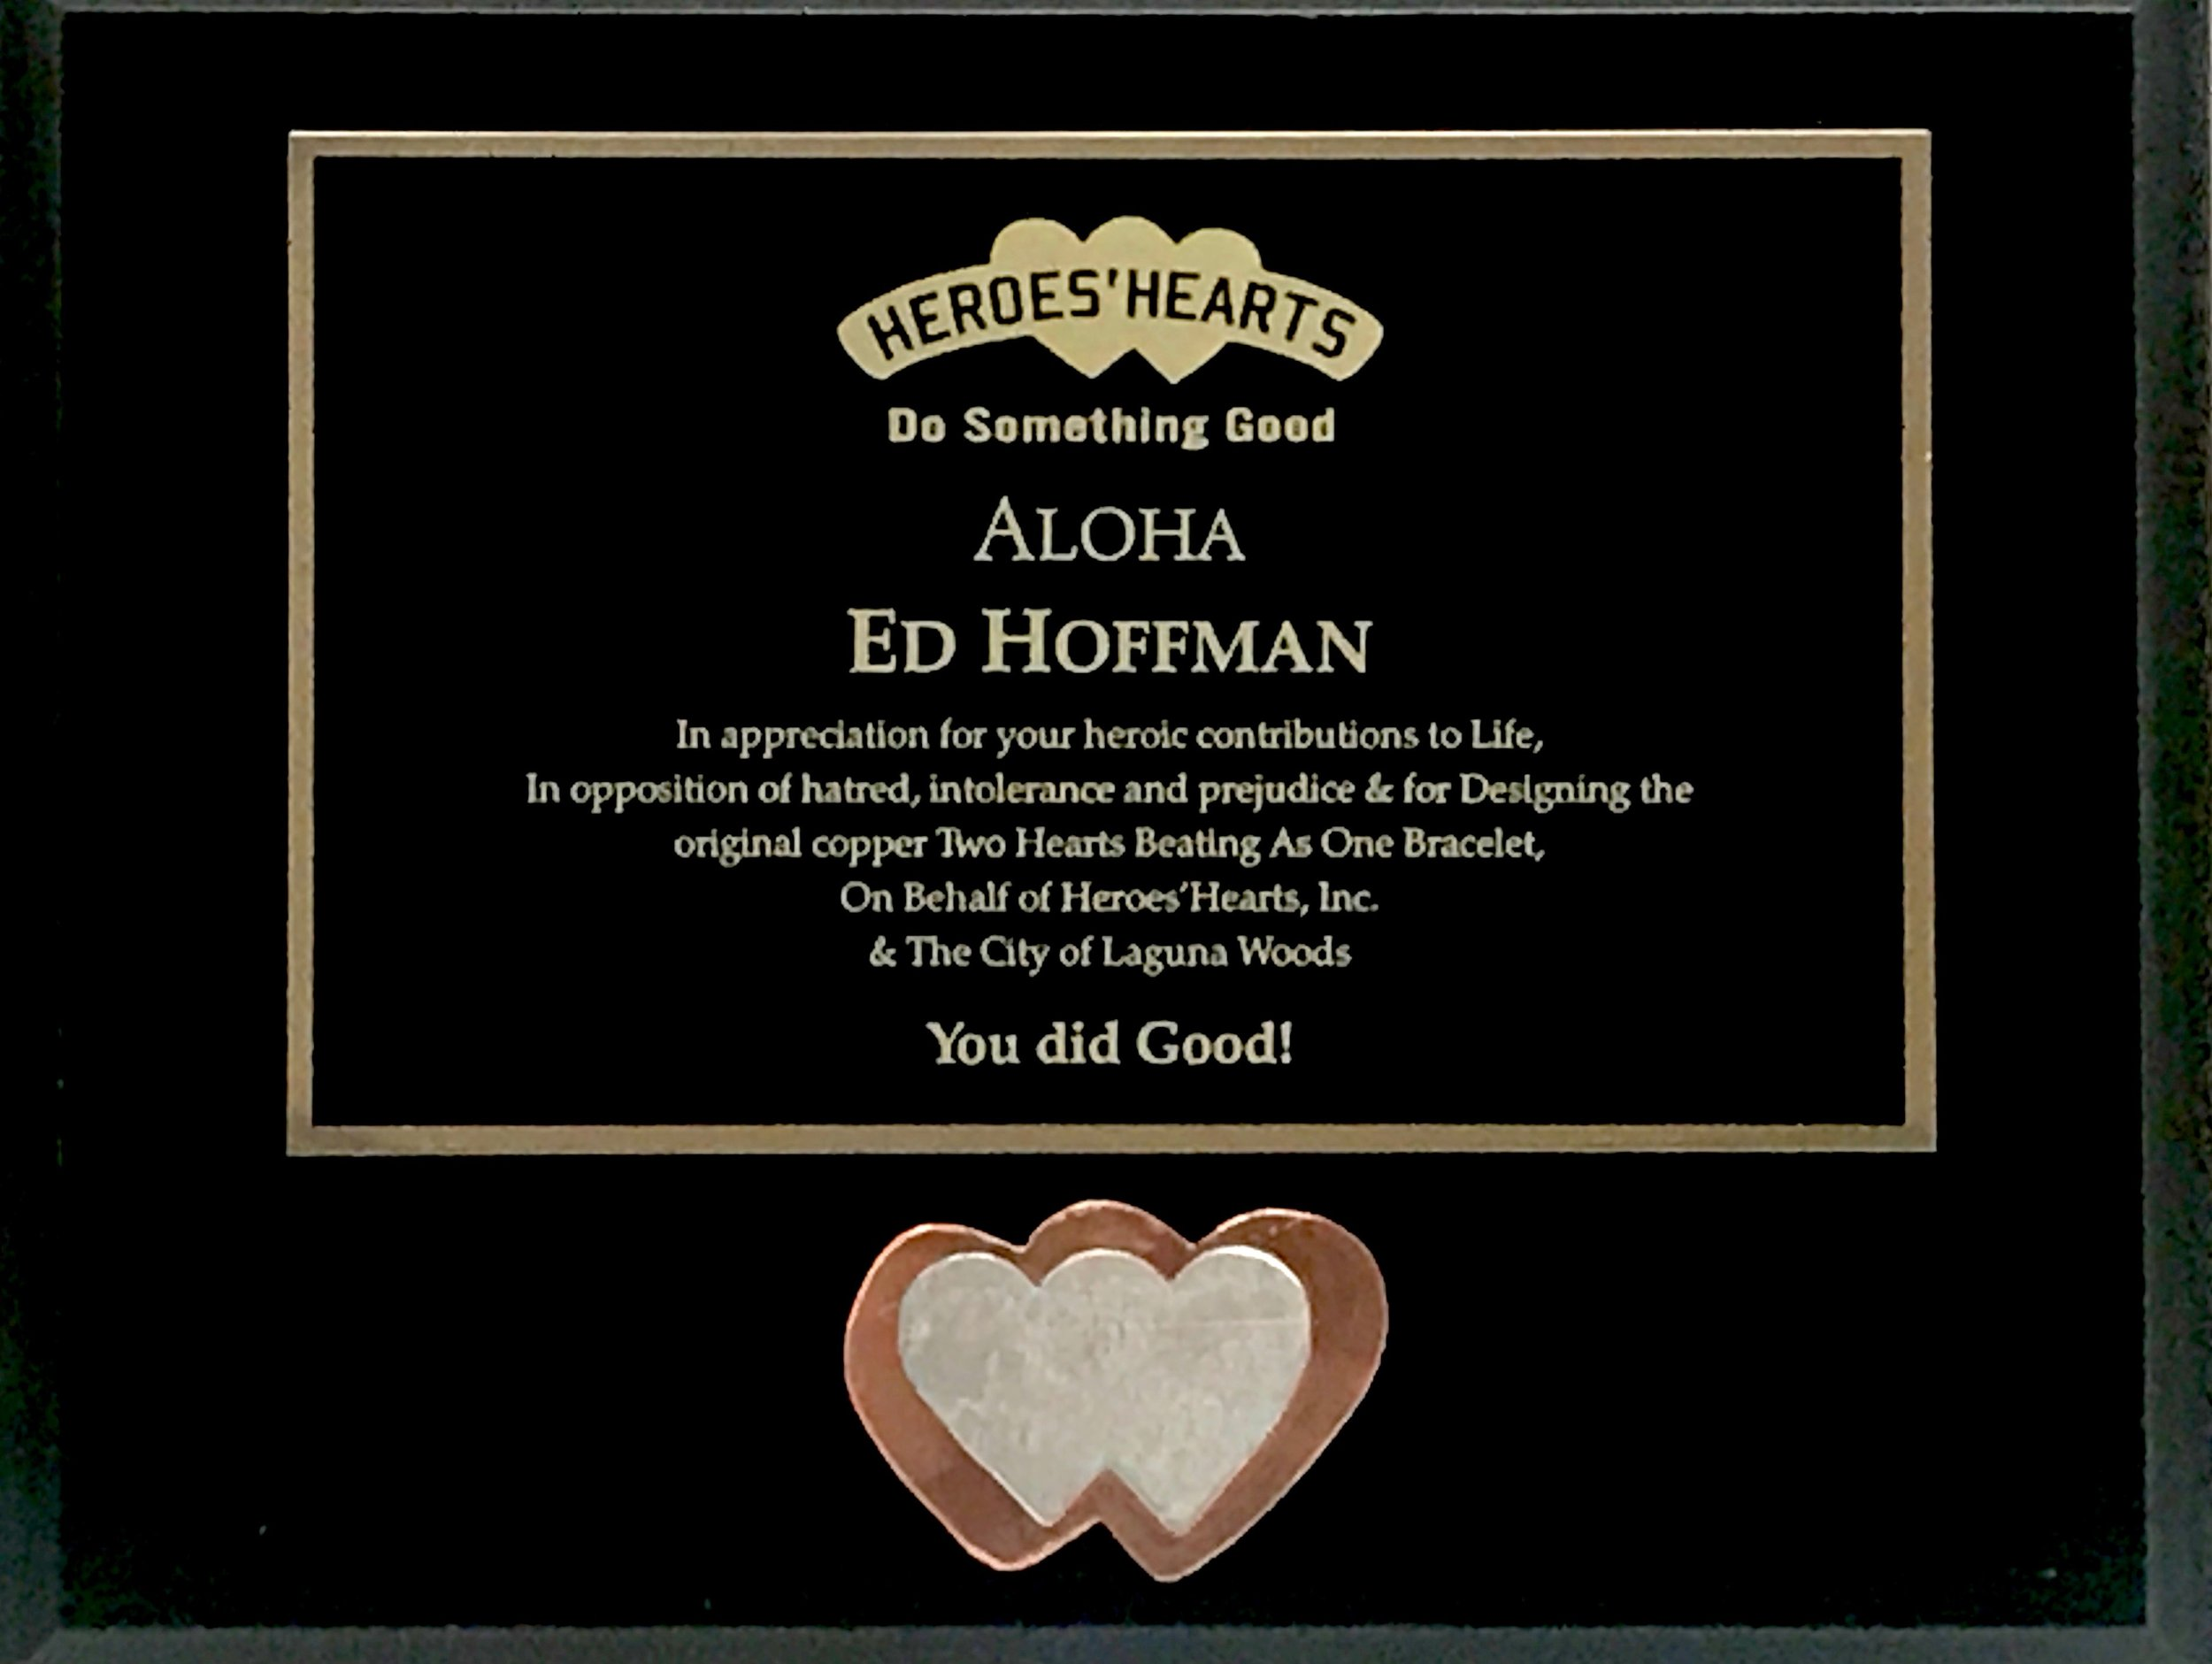 Ed received this award in Laguna Woods Village, the City of Laguna Woods, Veterans Day 2018